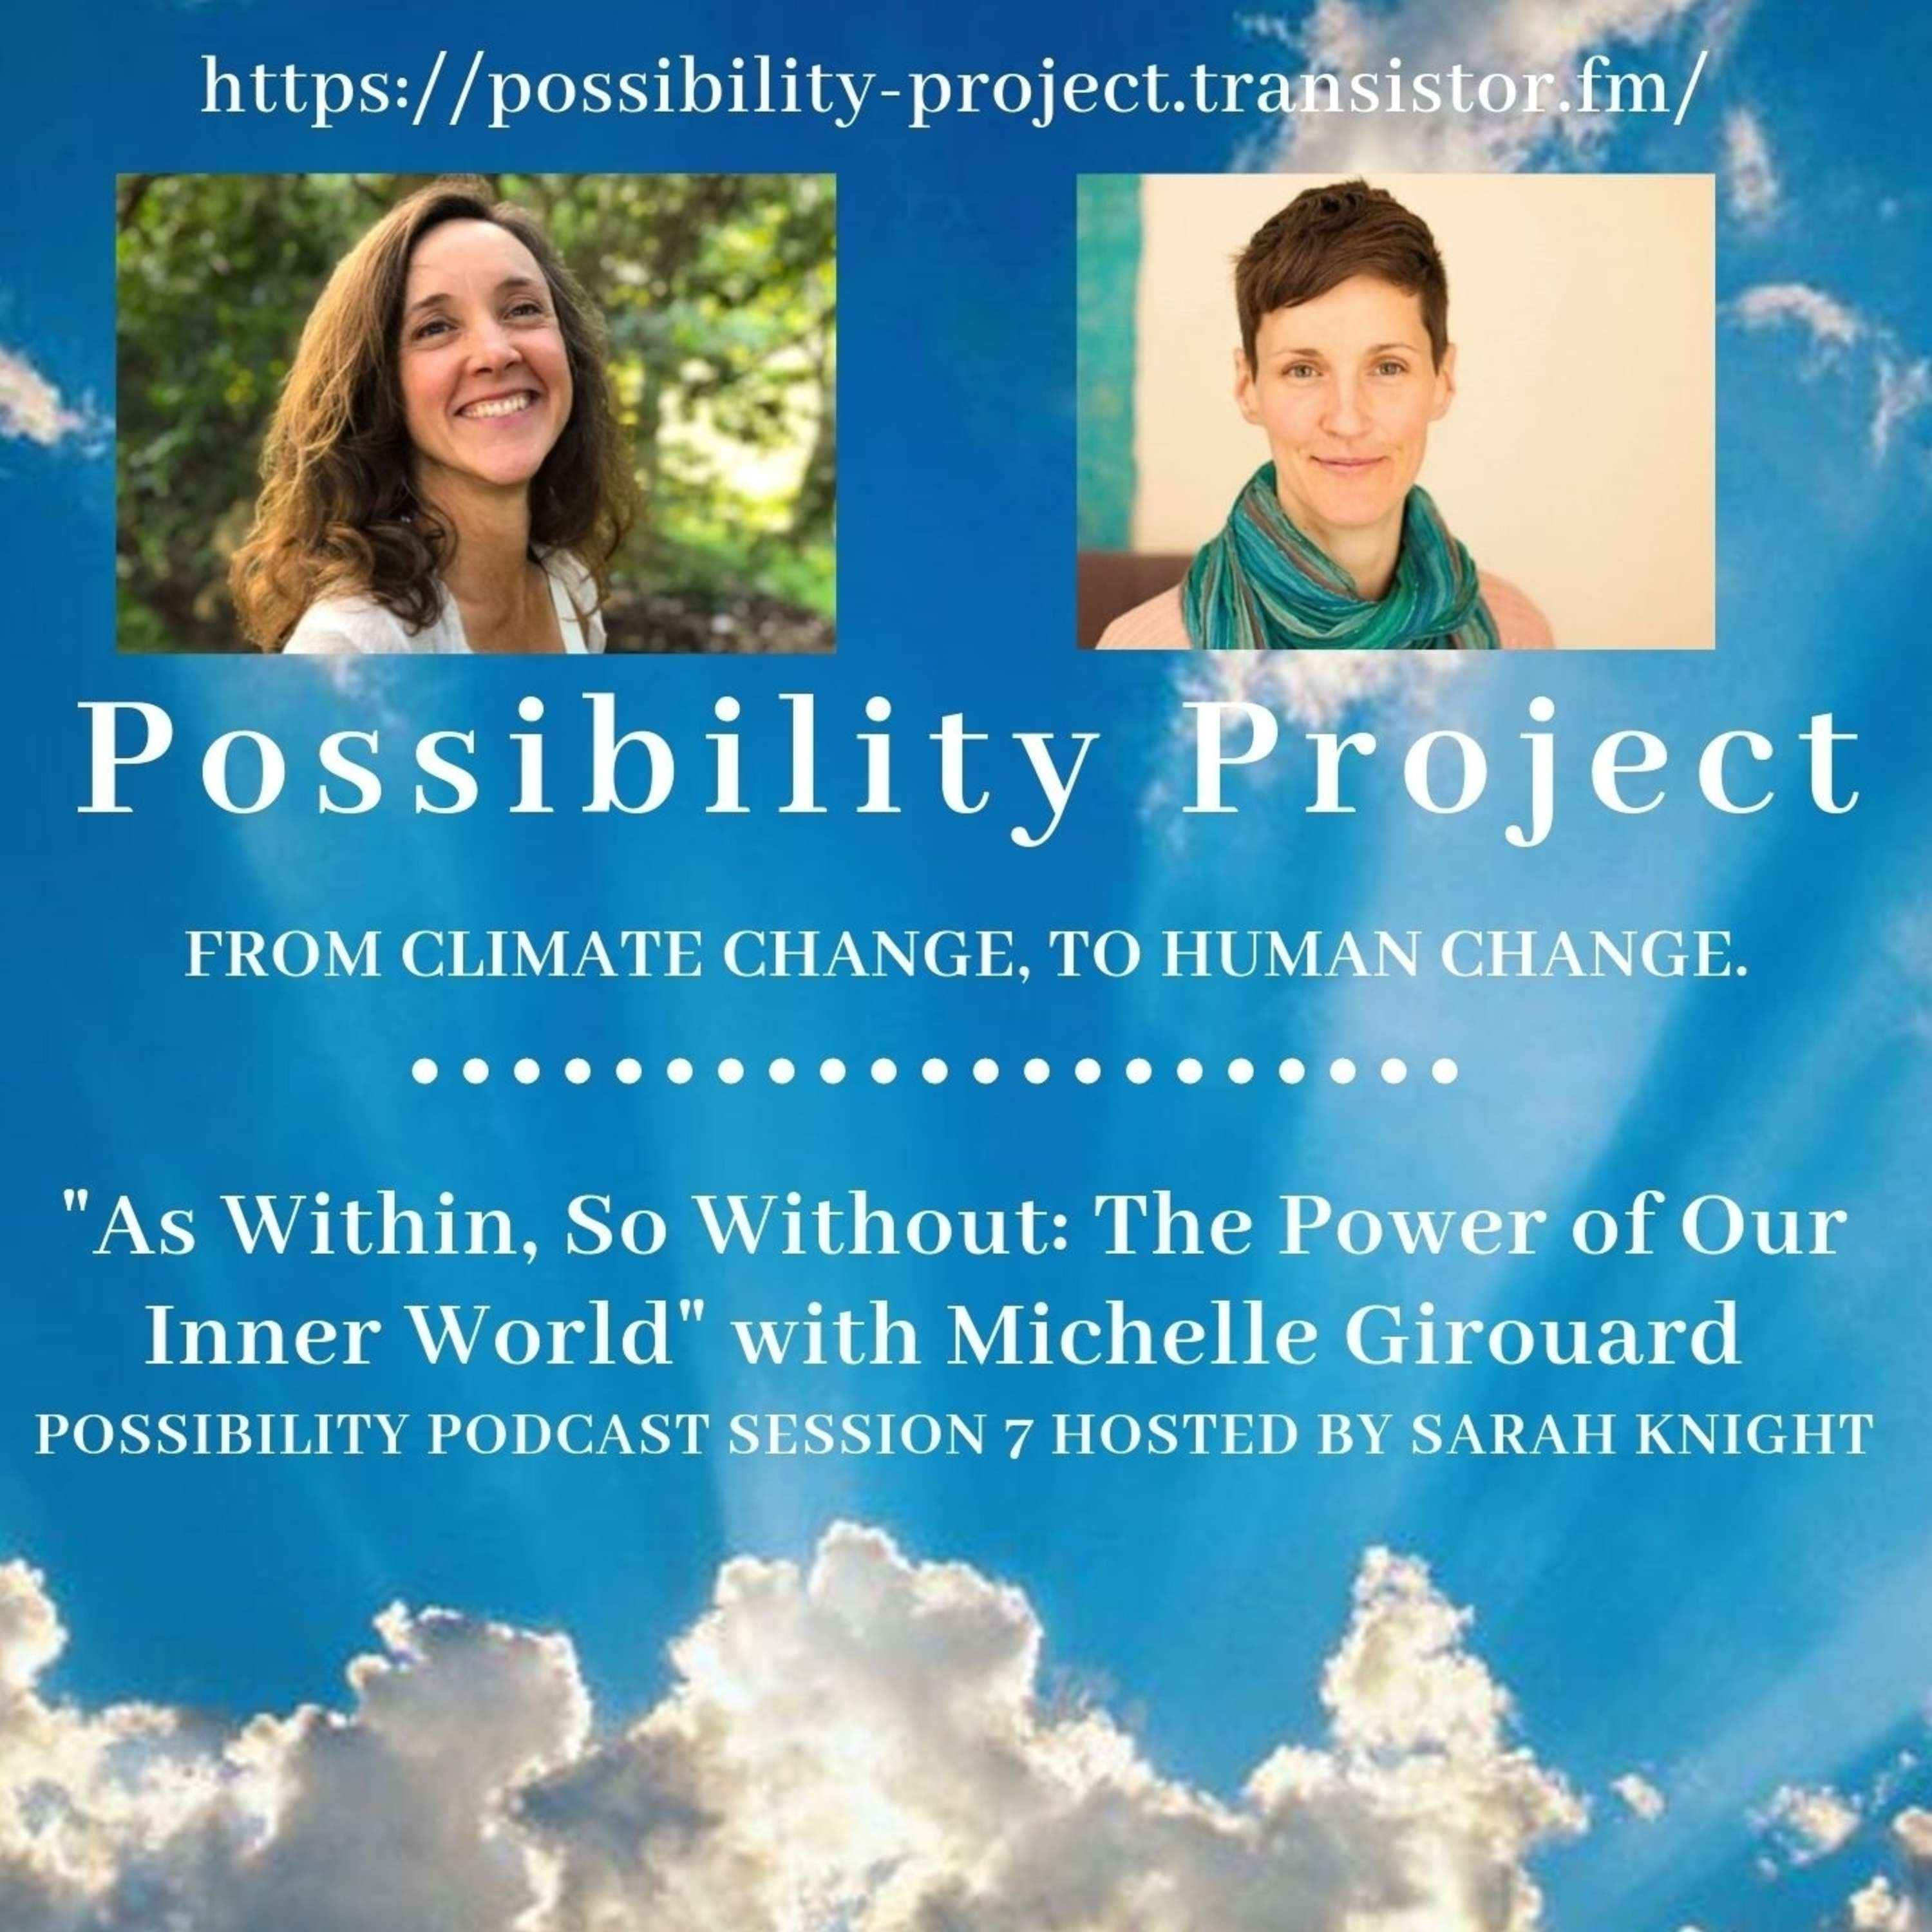 As Within, So Without: The Power of Our Inner World. Possibility Podcast Session 7